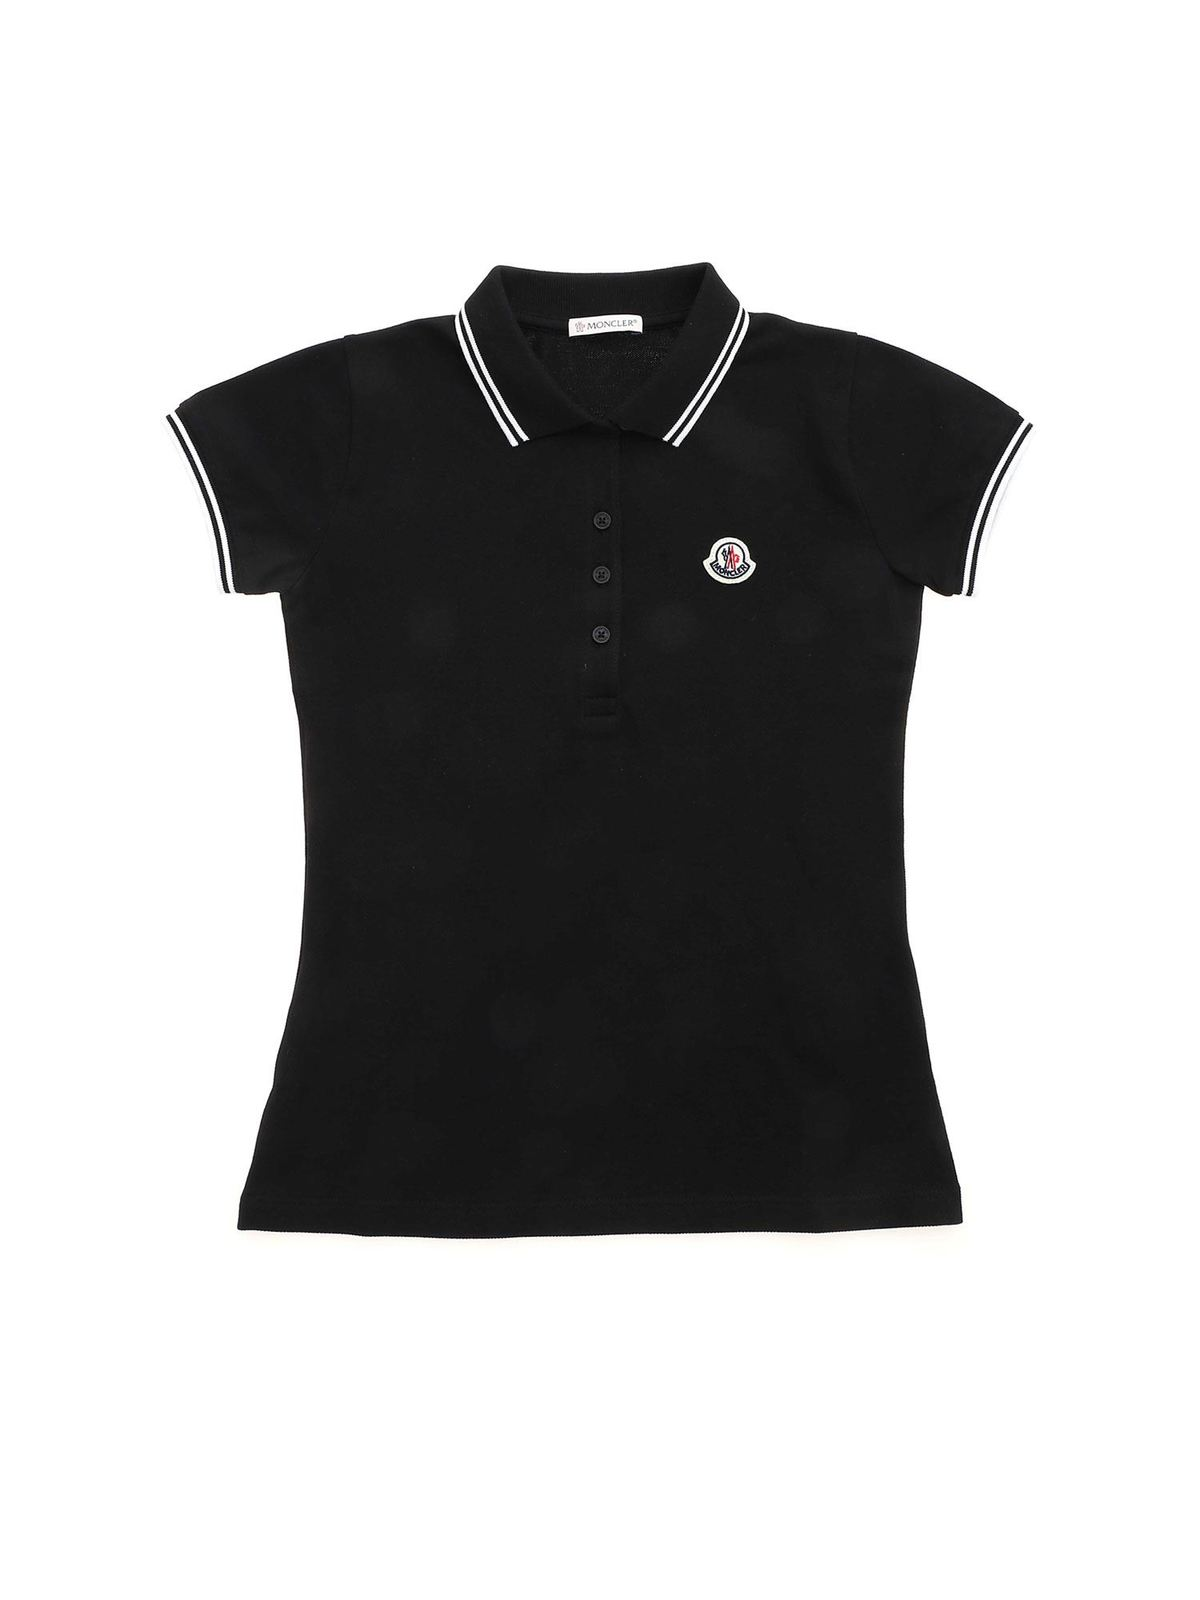 MONCLER JR LOGO PATCH POLO SHIRT IN BLACK